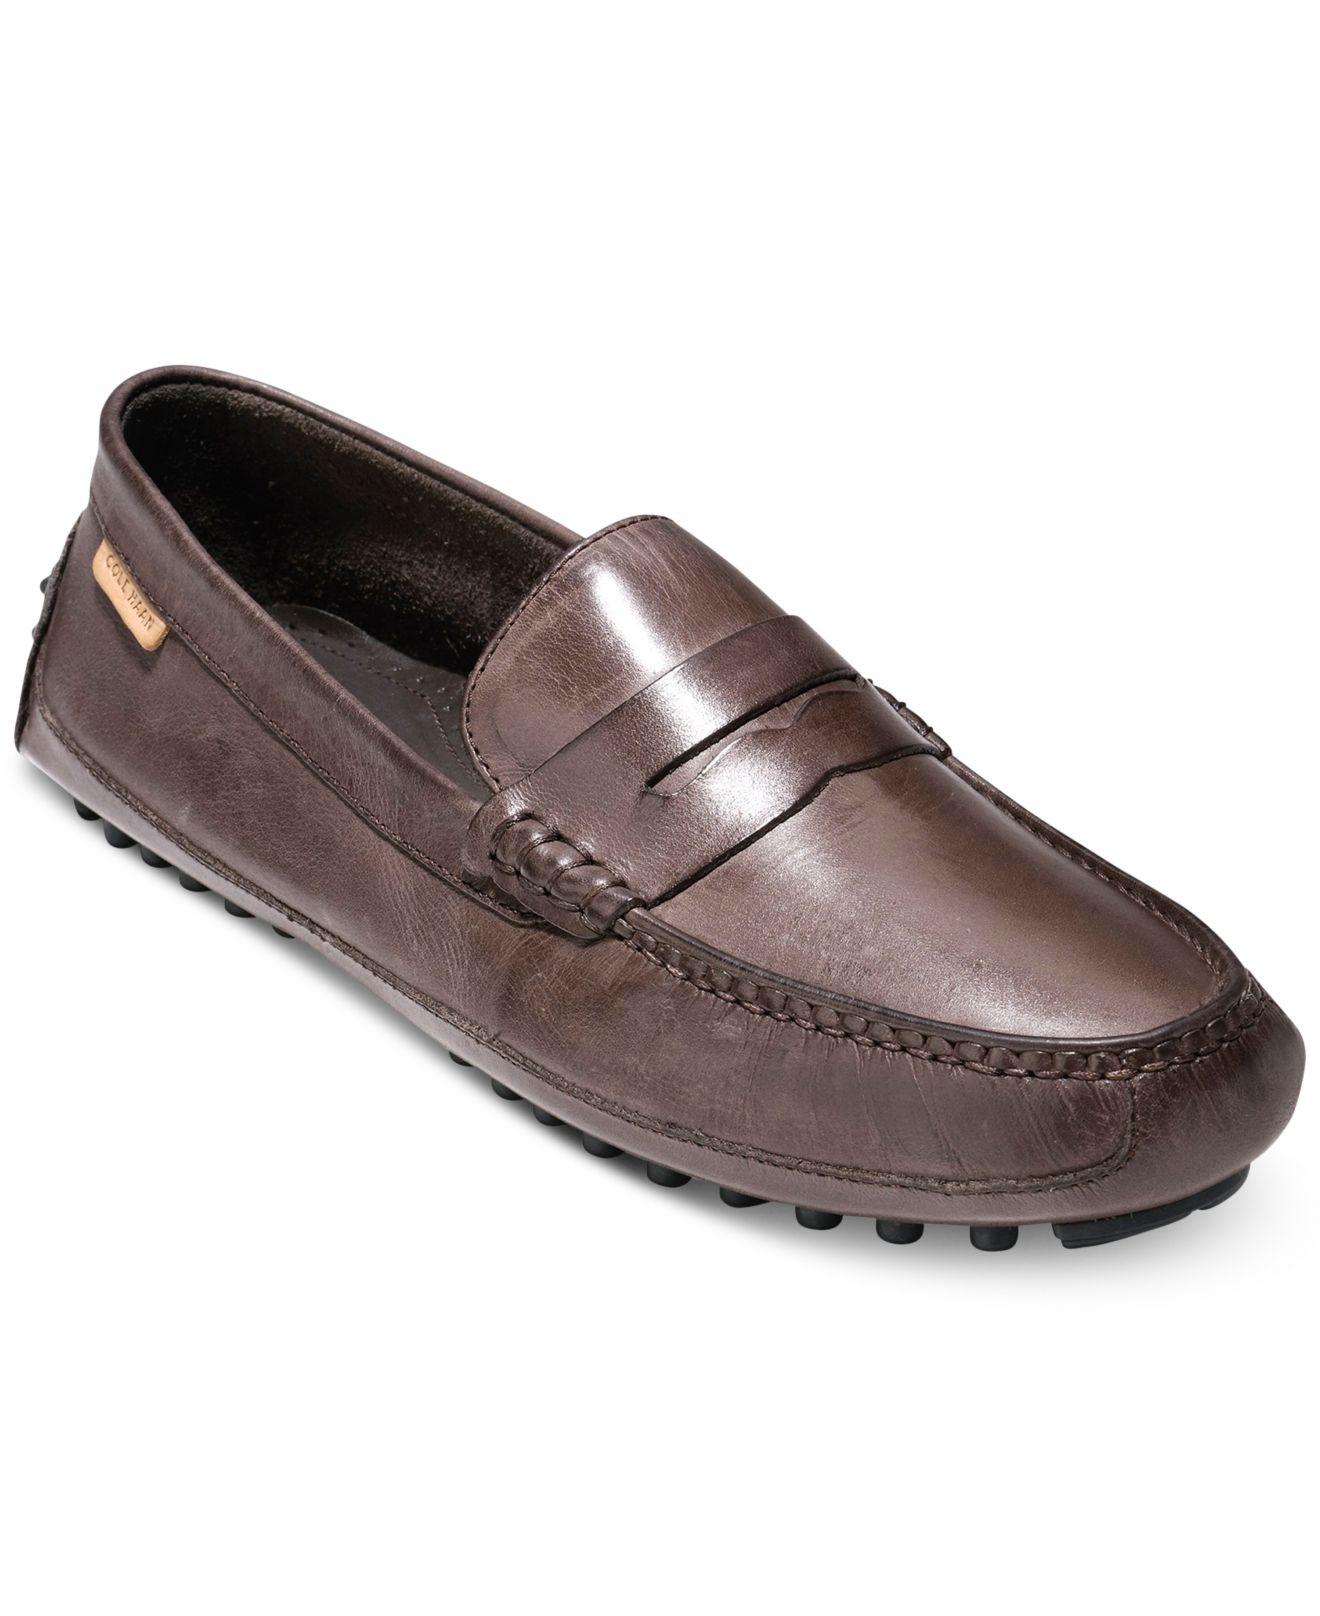 b45db43a375 Lyst - Cole Haan Men s Coburn Penny Drivers Ii in Brown for Men